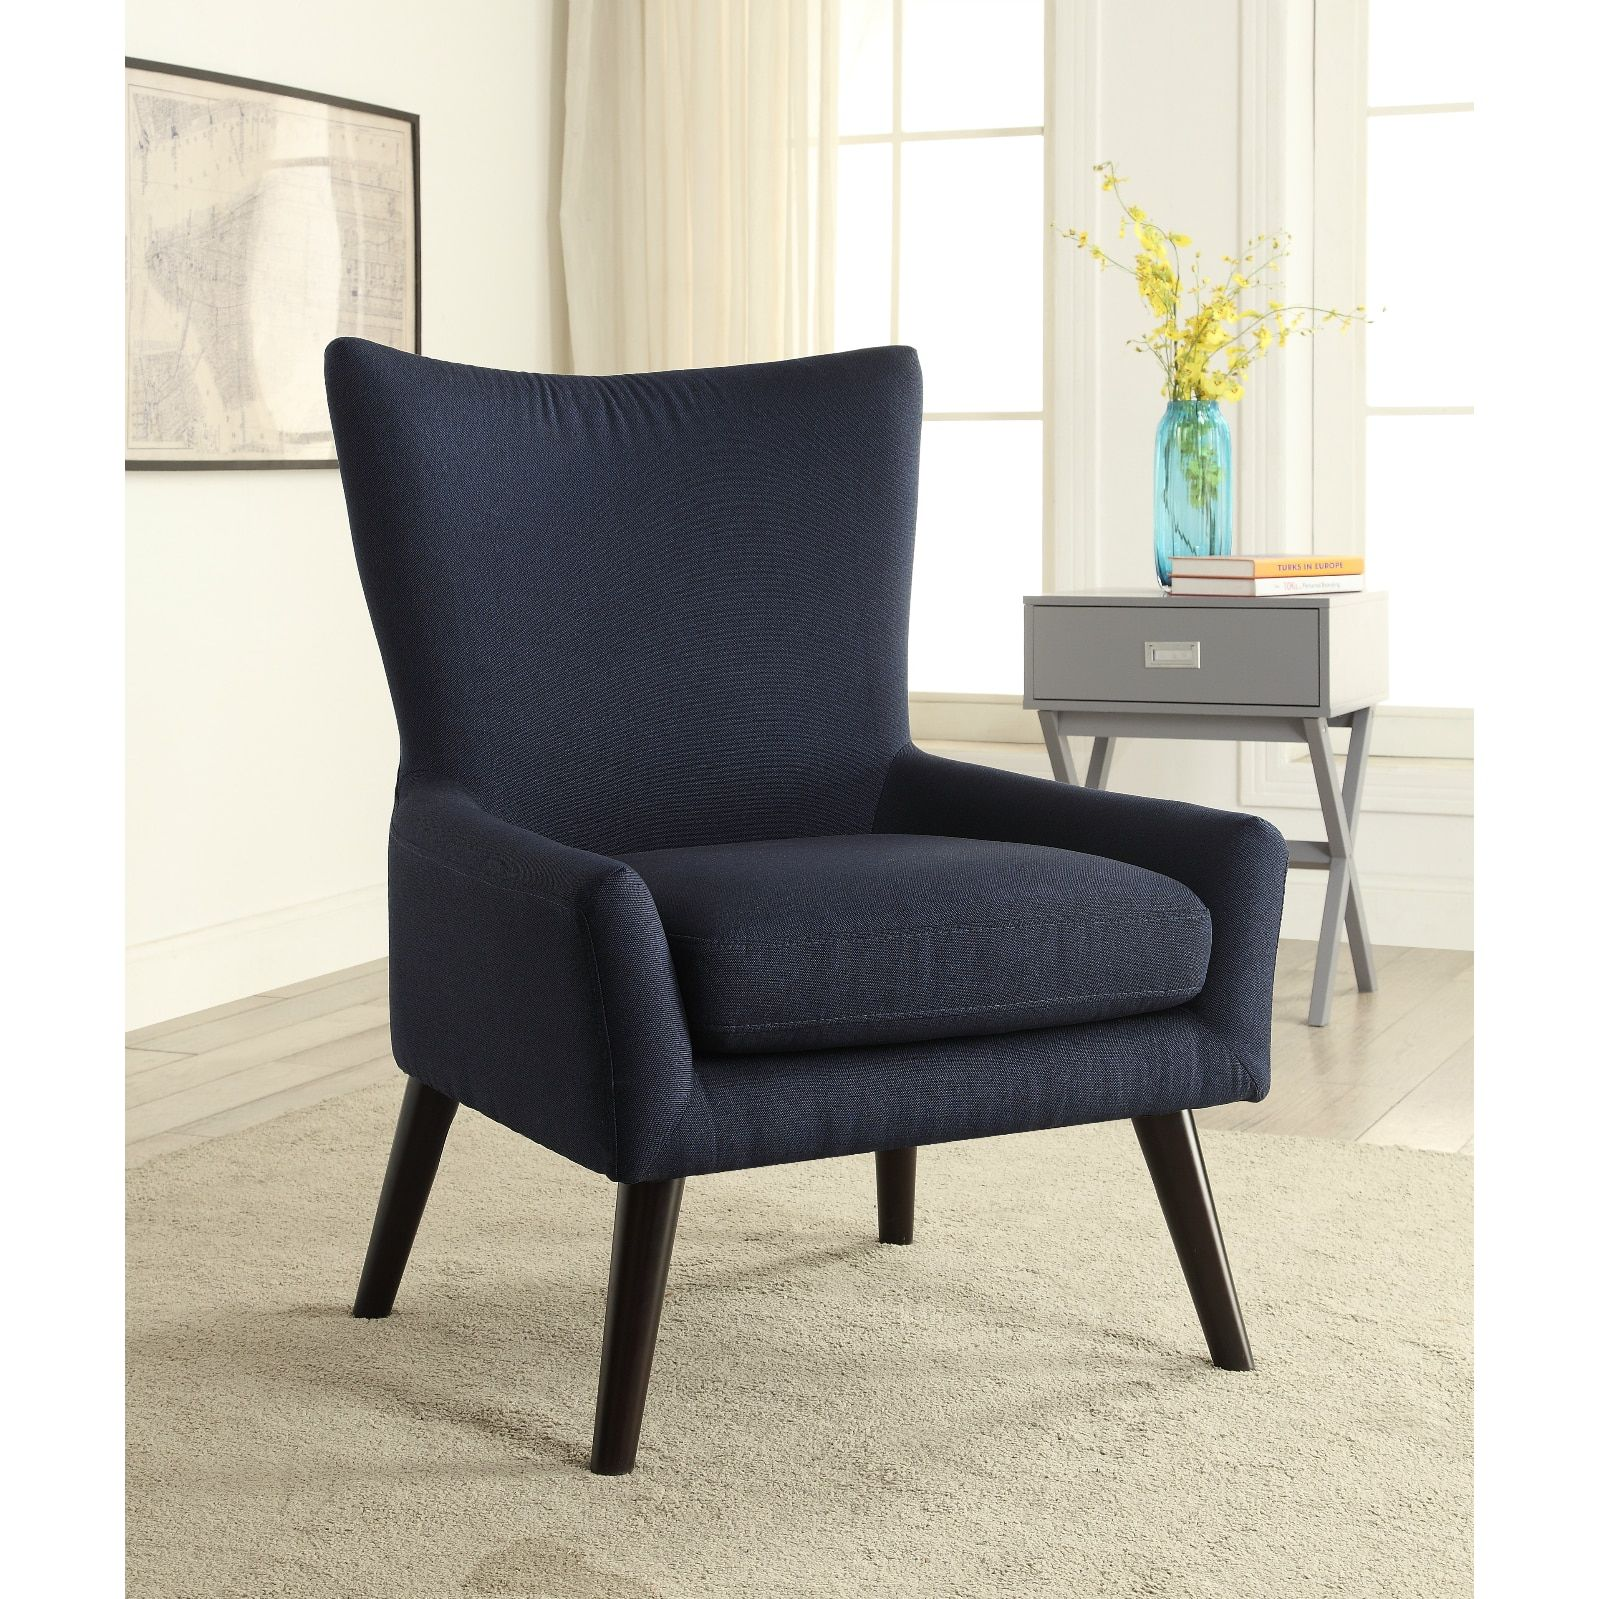 Mid Century Blue High Back Arm Chair  19137155  Overstock Classy High Back Living Room Chair Inspiration